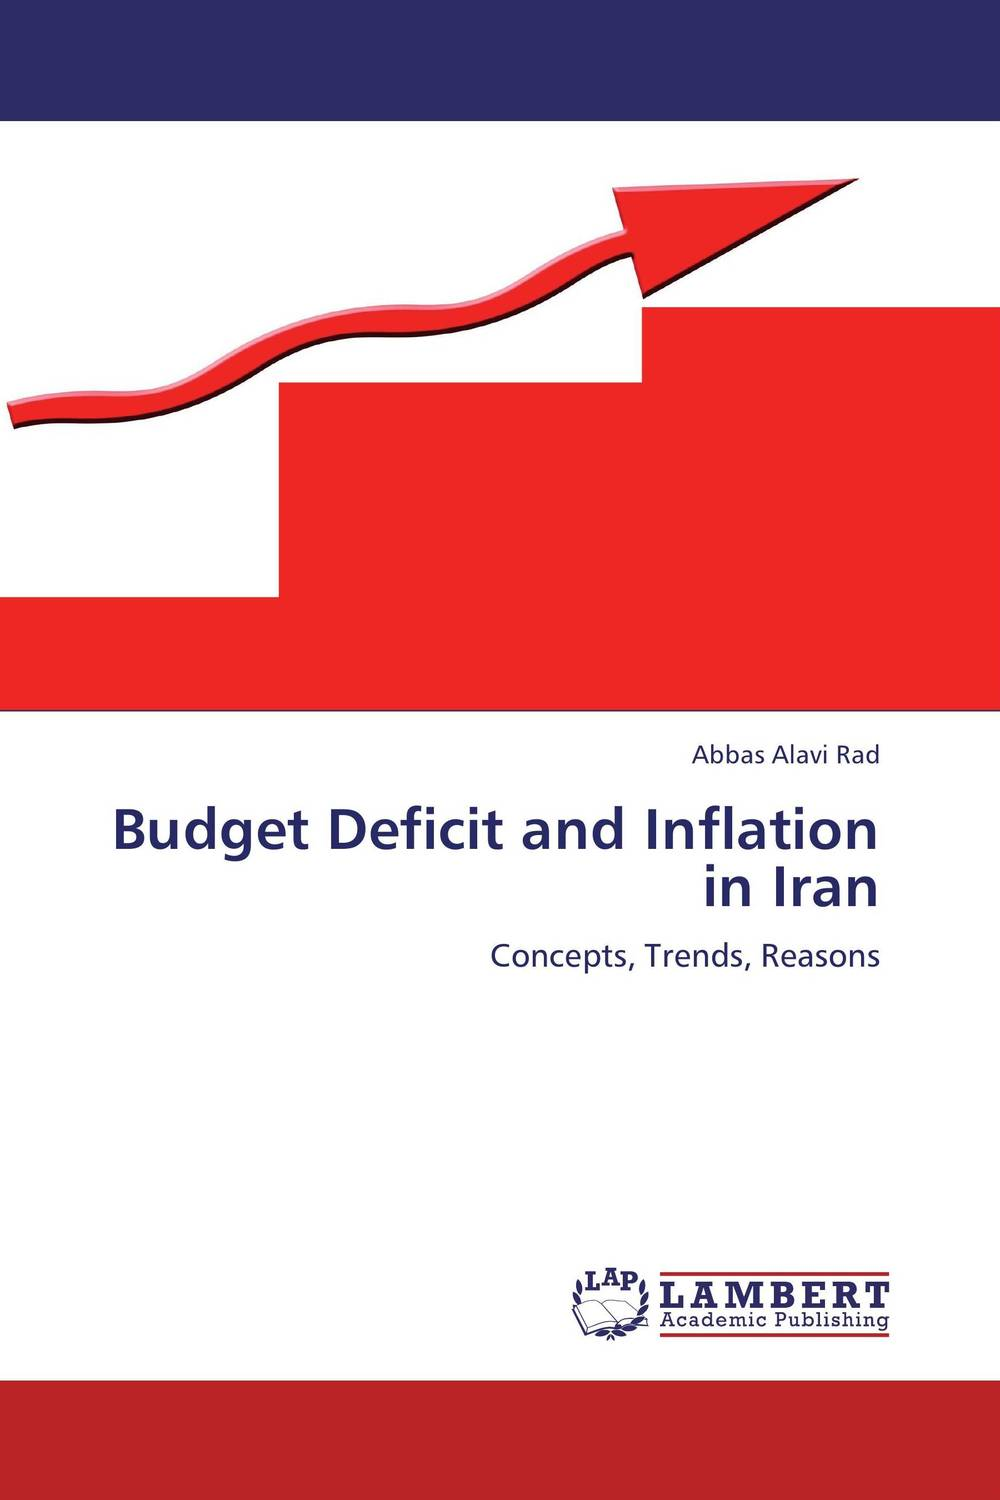 Budget Deficit and Inflation in Iran margaretha dramsdahl adults with attention deficit hyperactivity disorder